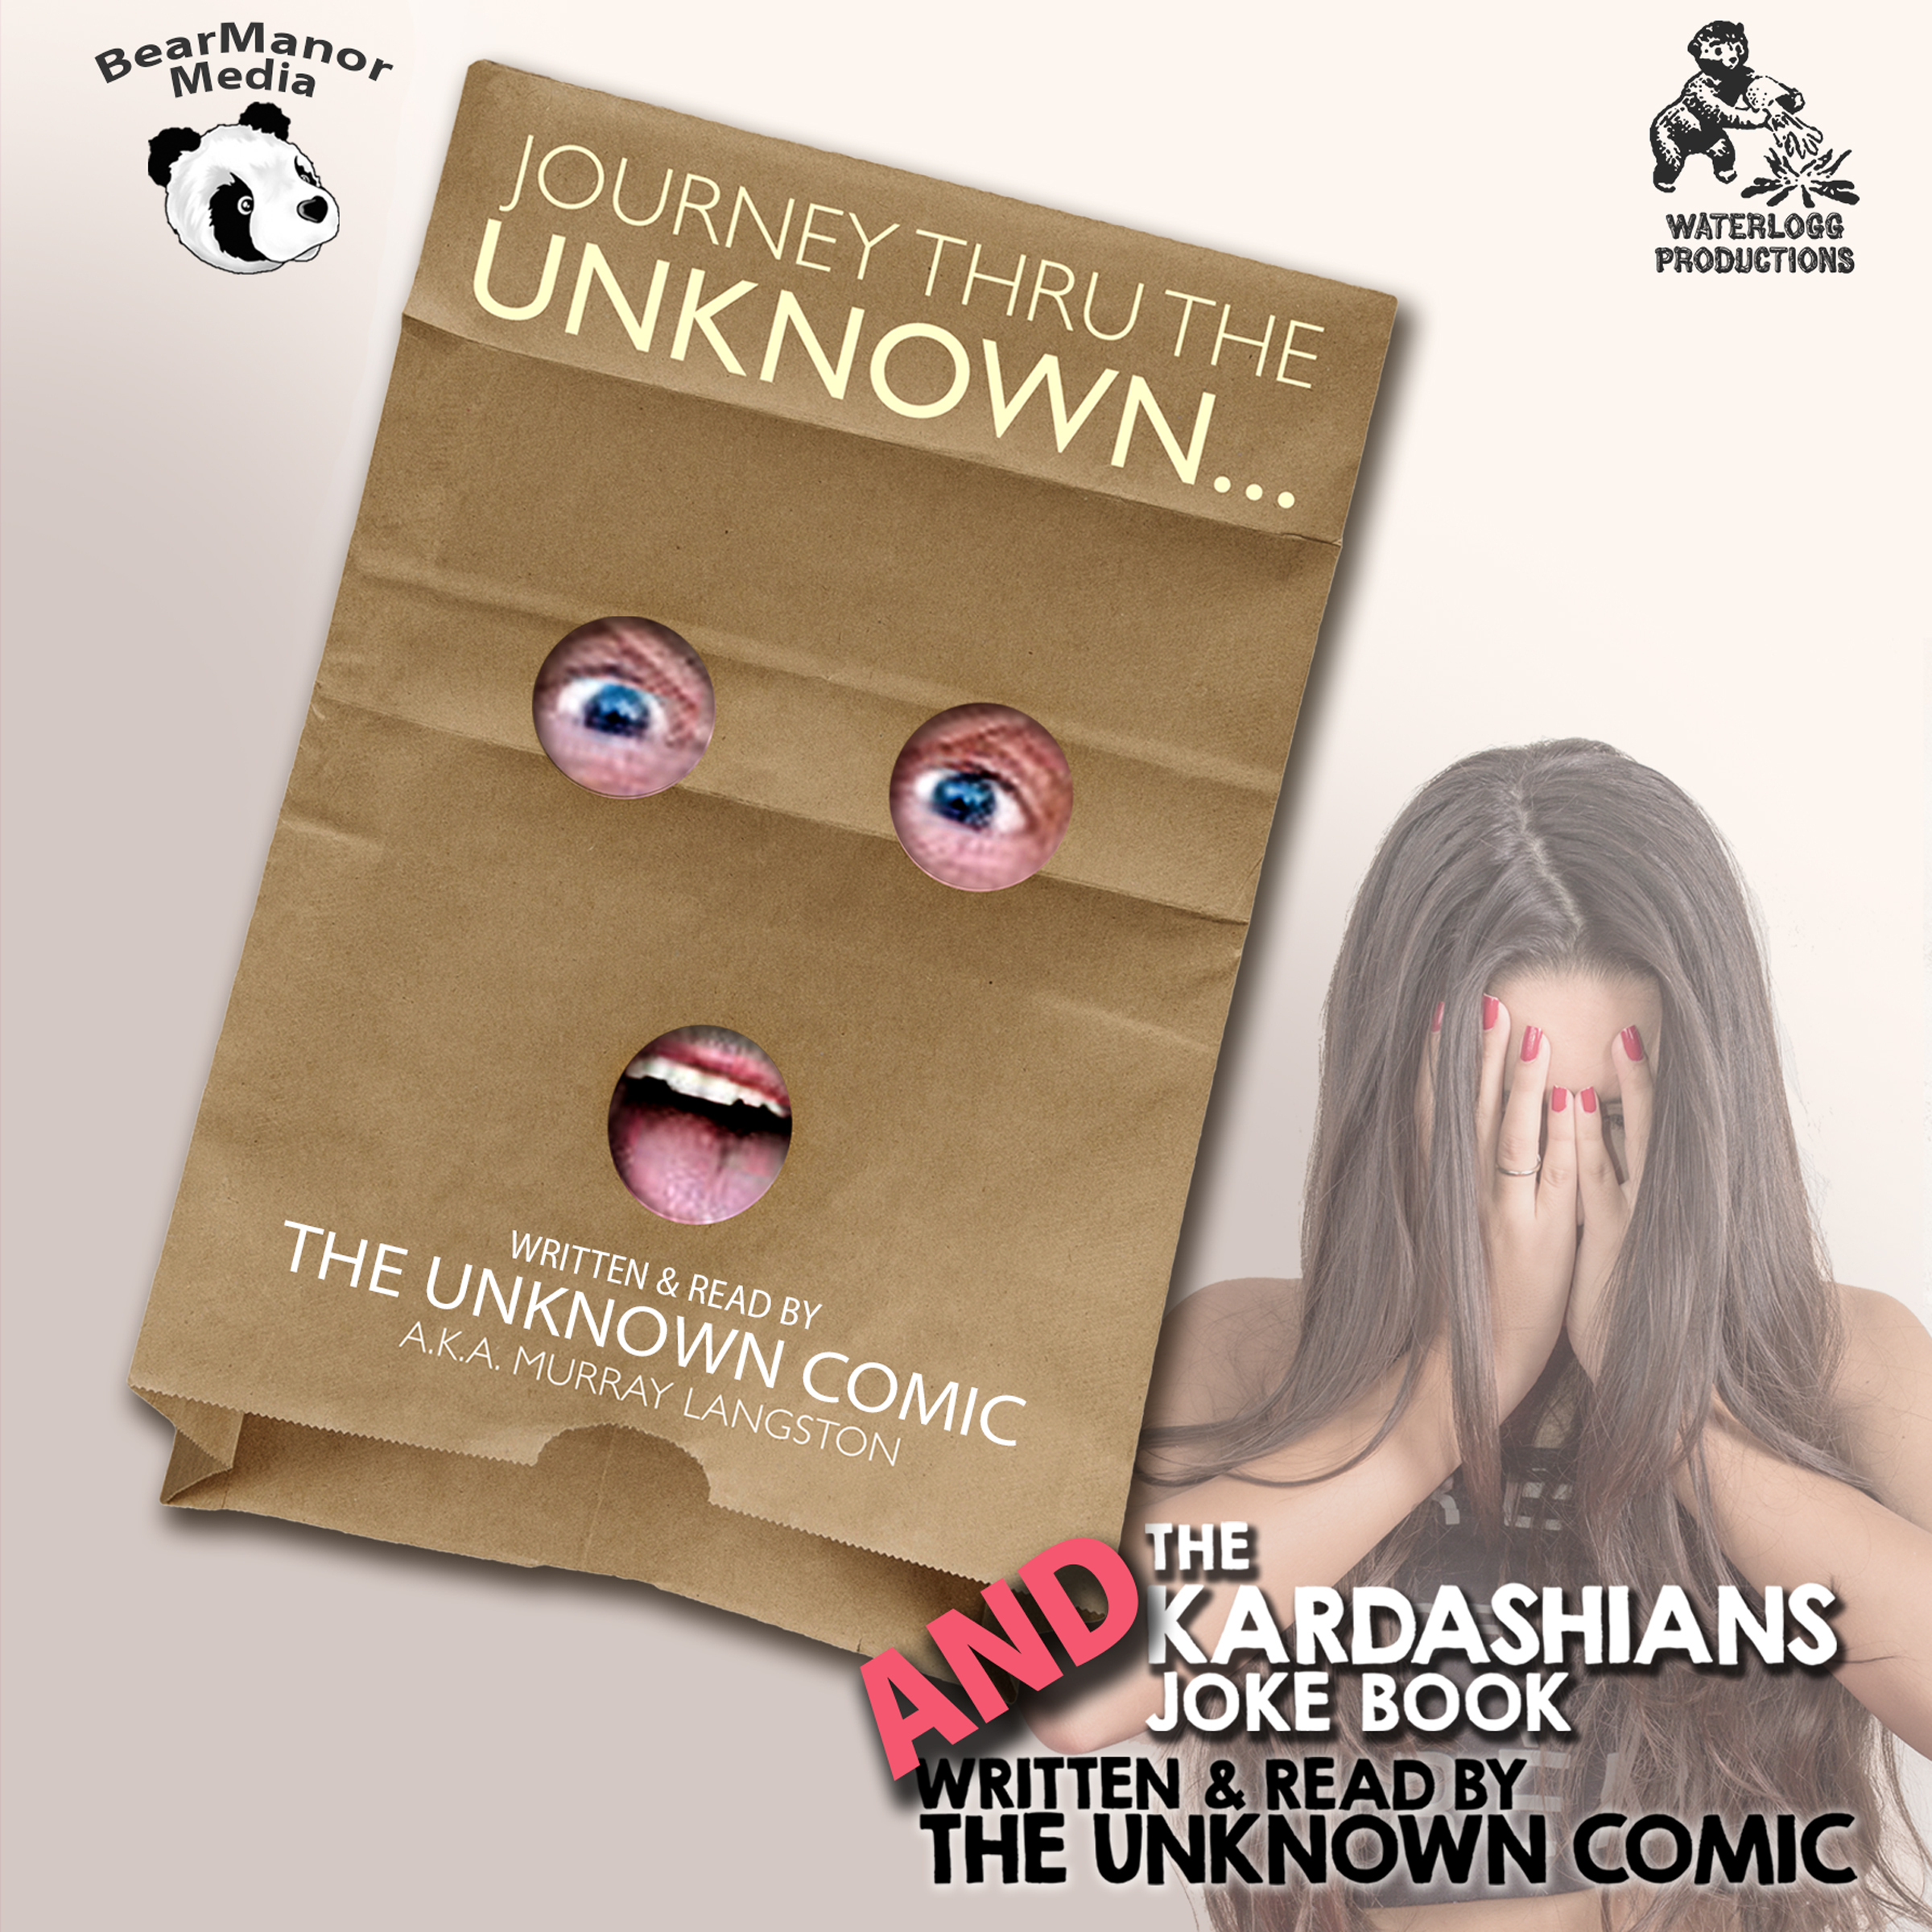 Printable The Unknown Comic Collection: Journey thru the Unknown and The KardashiansJoke Book Audiobook Cover Art